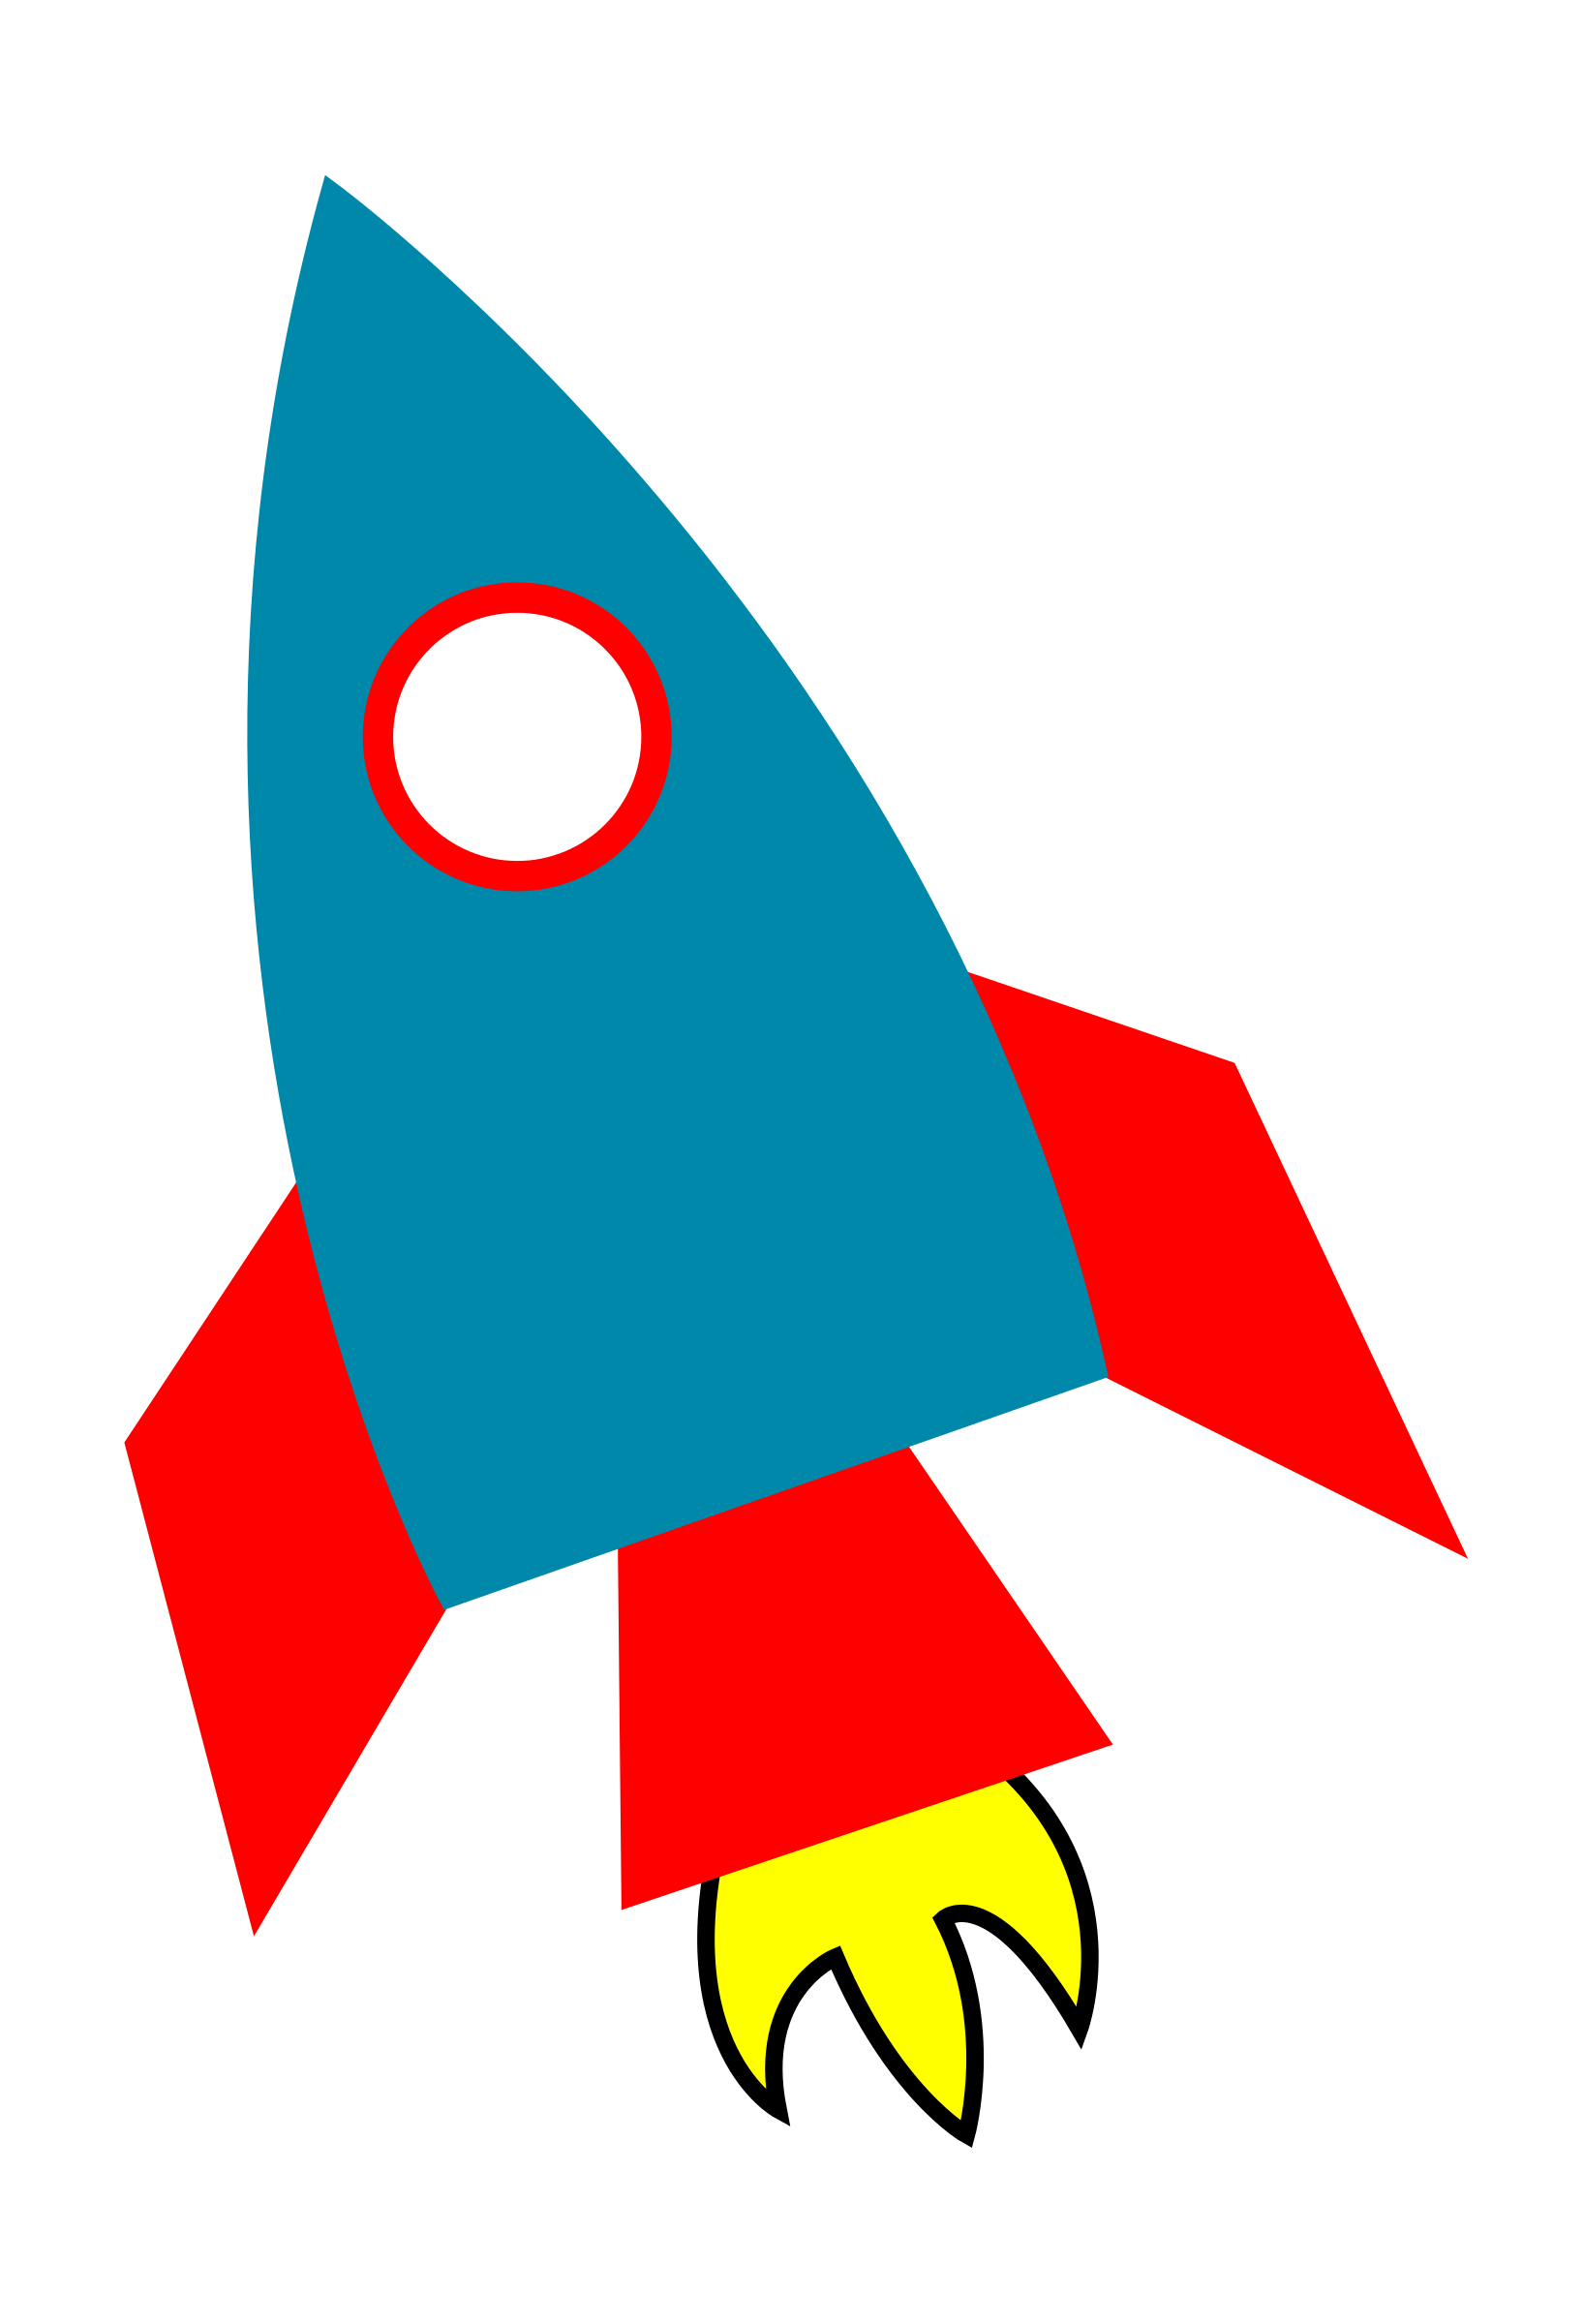 Missile clipart cute Rocket Widescreen Space Wallpapers